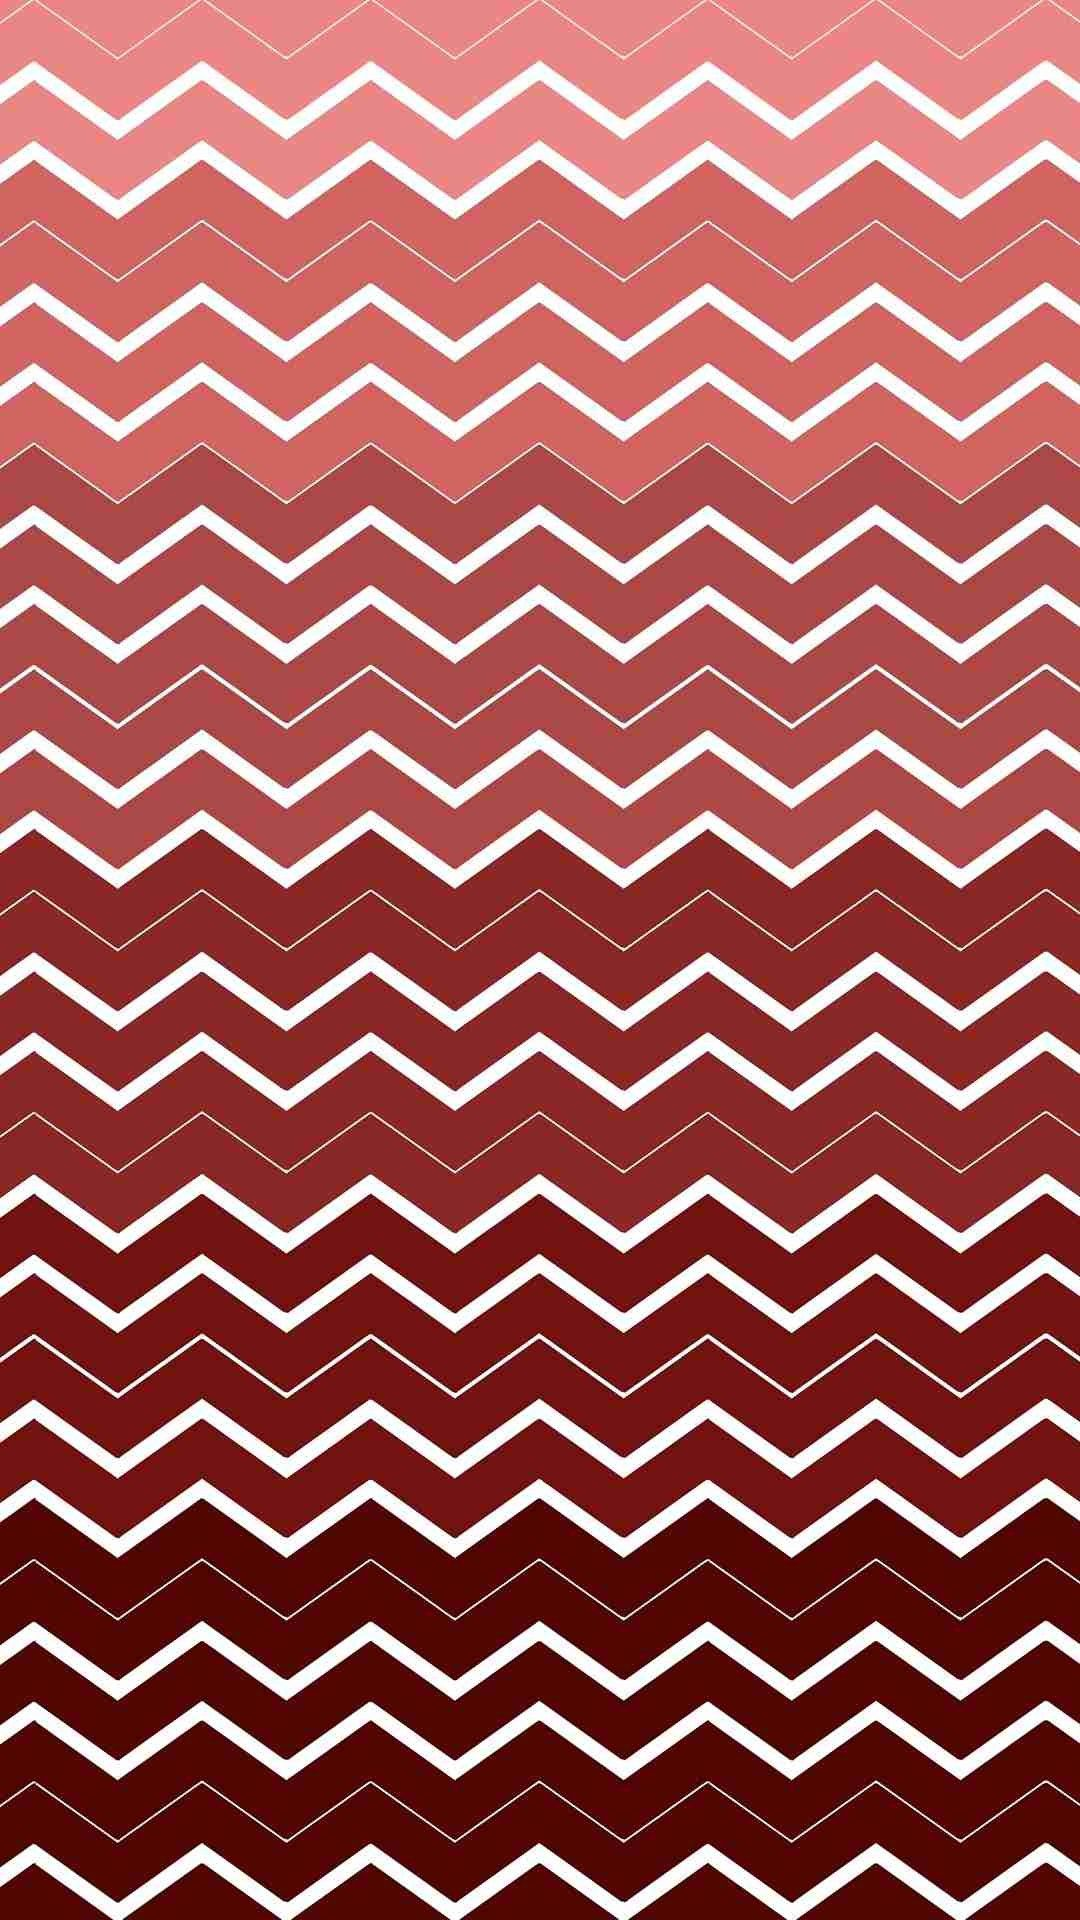 Iphone wallpapers tumblr chevron - Chevron And Zigzag Pattern Iphone 6 Plus Wallpaper Ombre Red And White Iphone